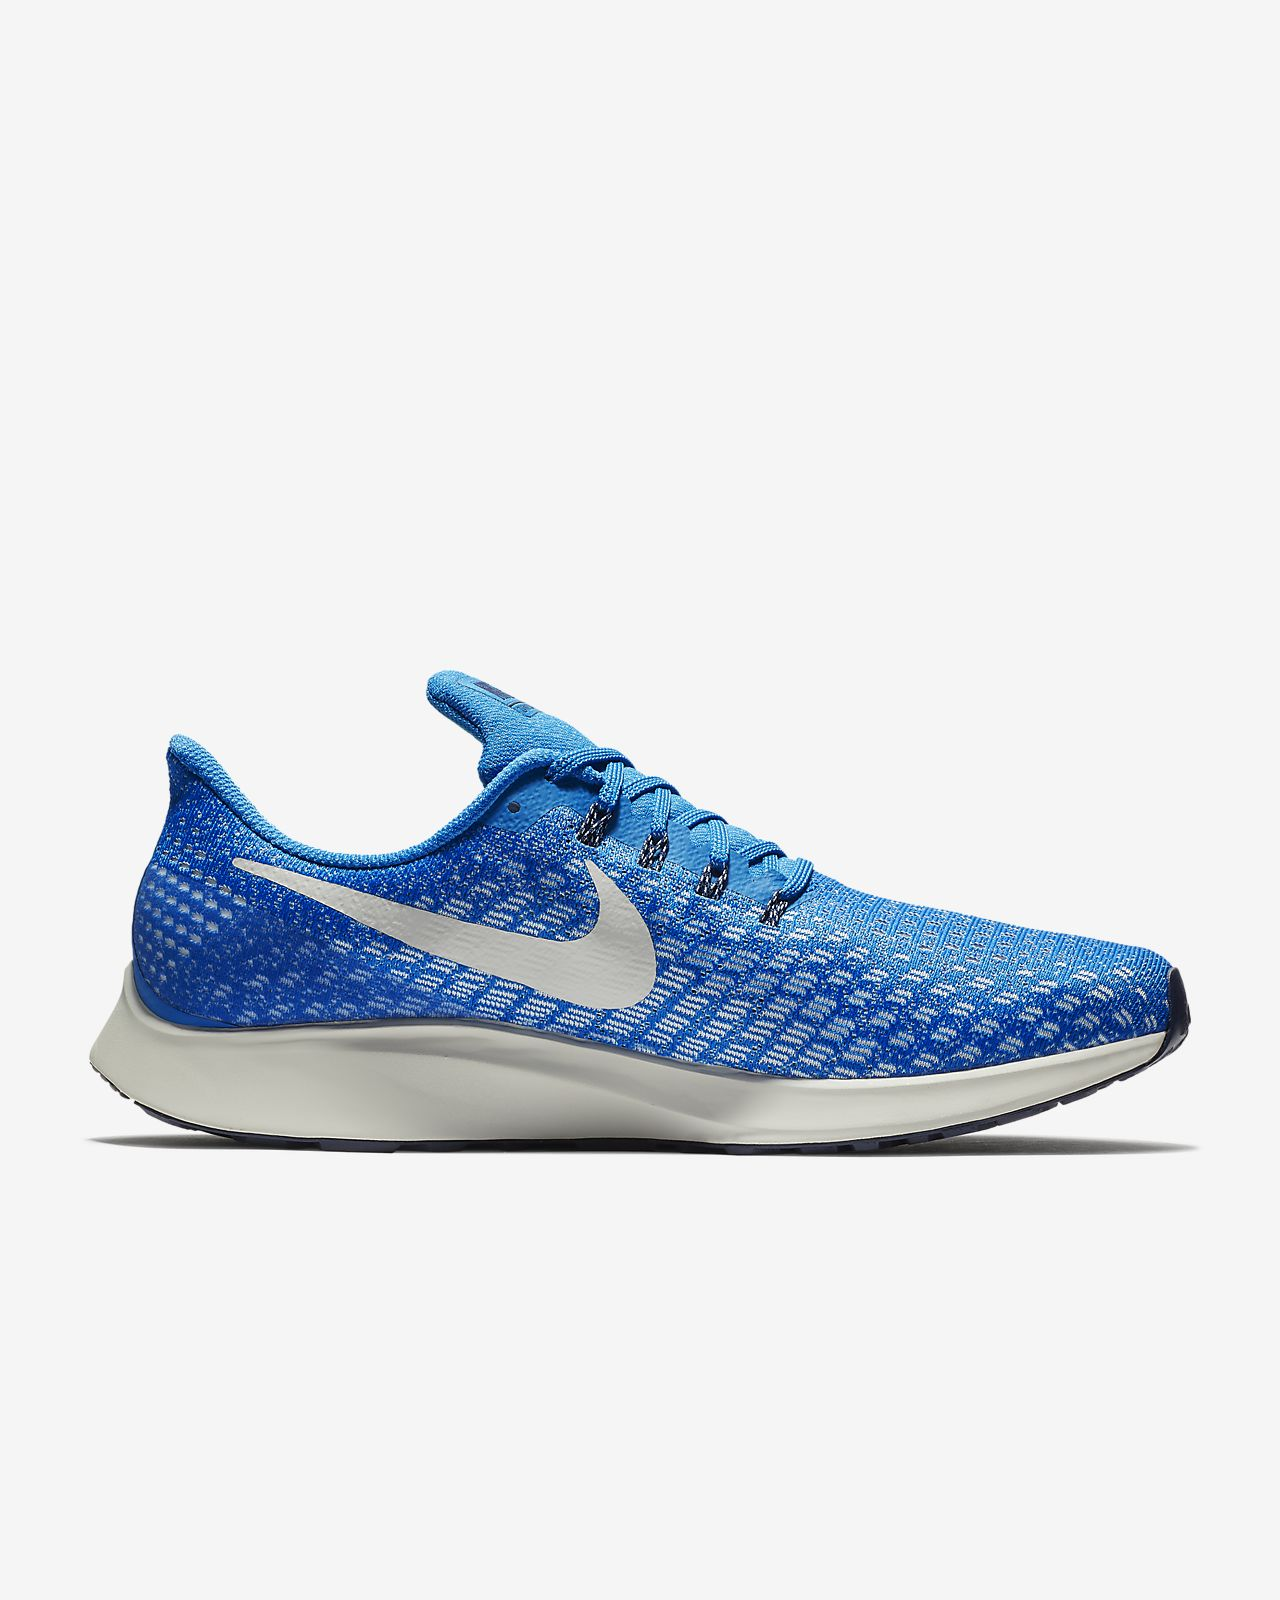 reputable site 76b9c dd51d ... Nike Air Zoom Pegasus 35 Men s Running Shoe